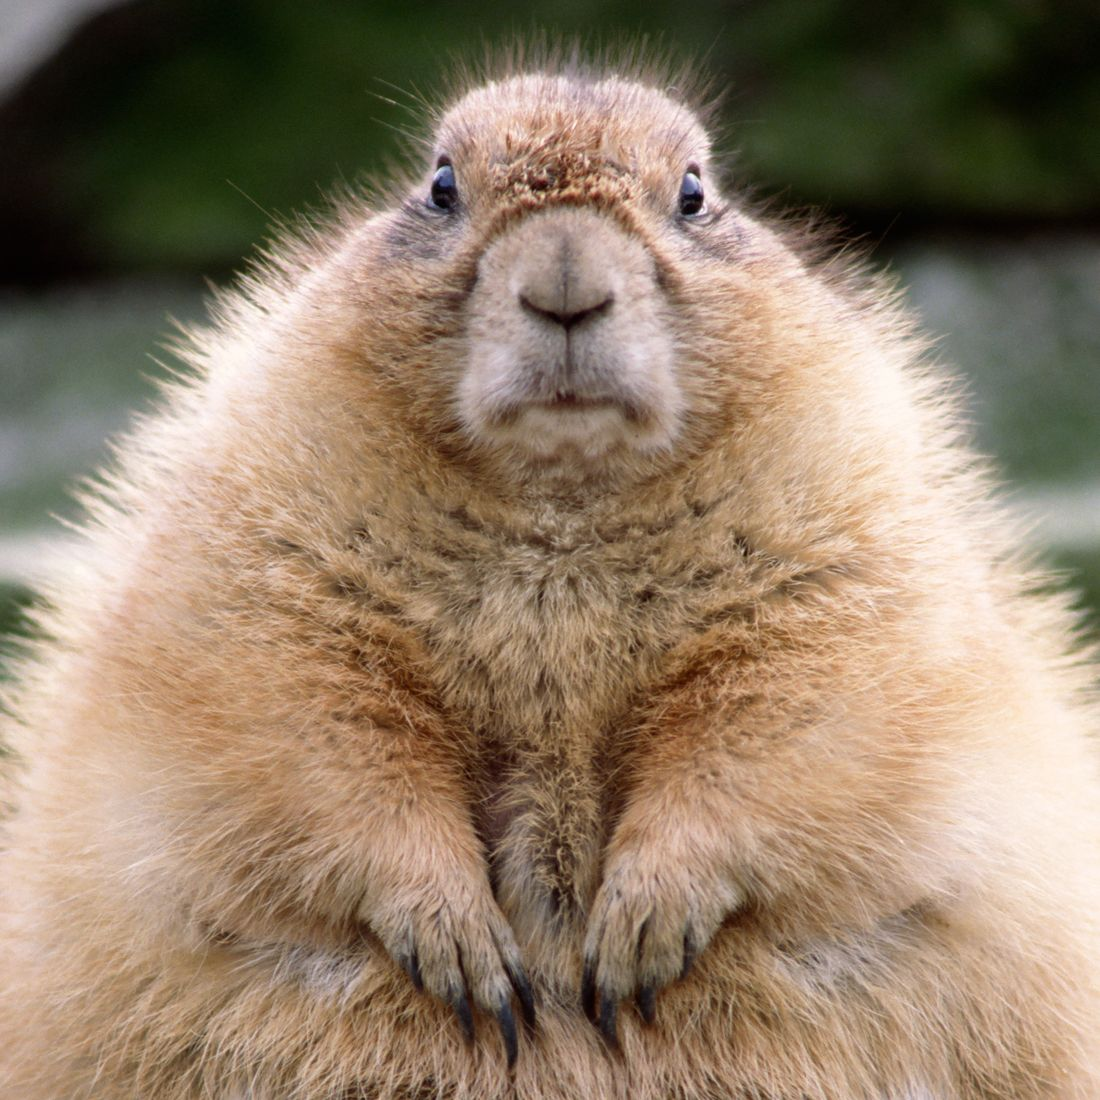 Happy Groundhog Day! (Photo: remem/Getty Images)